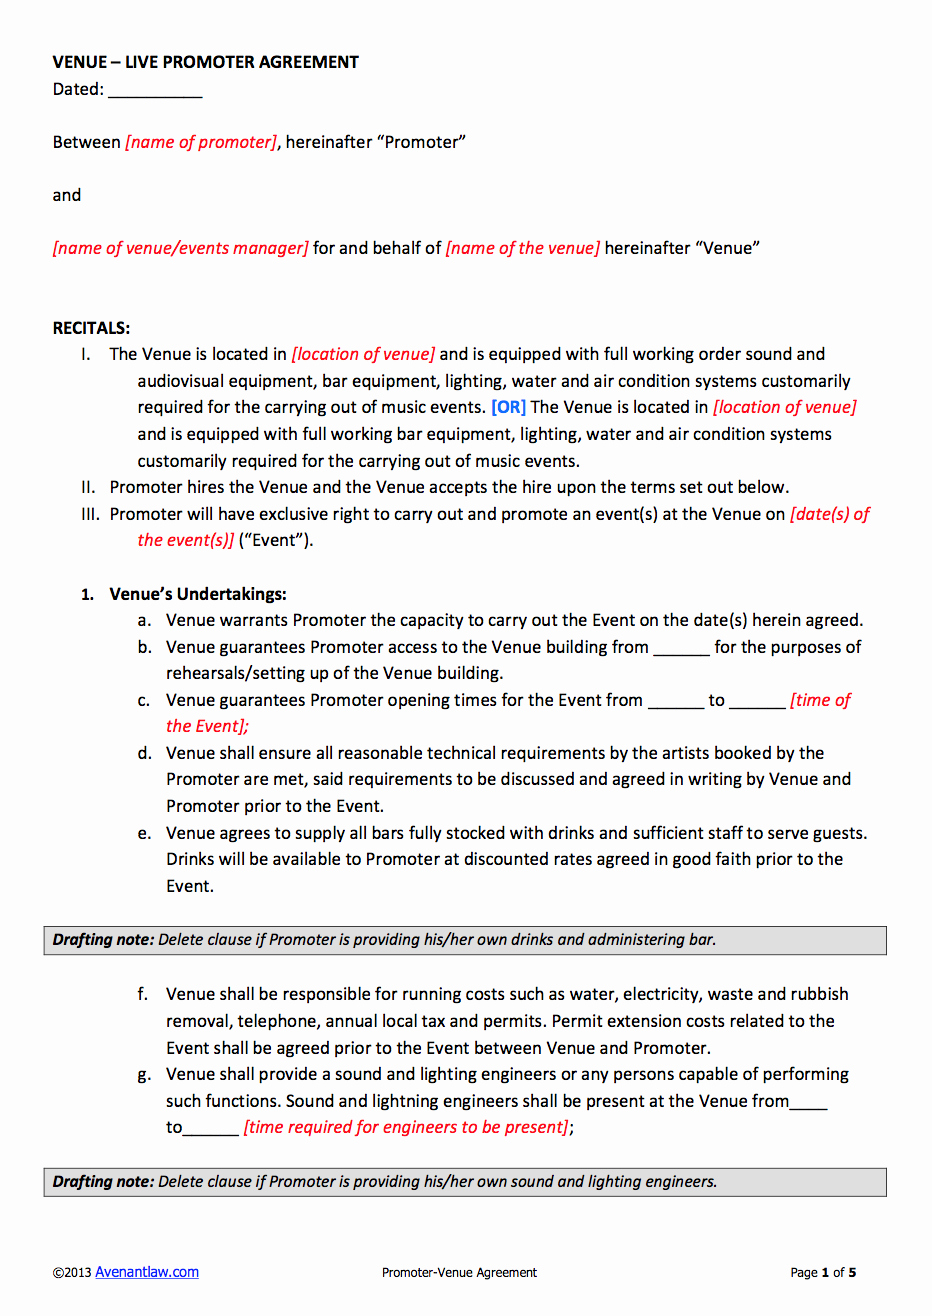 Event Venue Contract Template Best Of Promoter Venue Contract Template